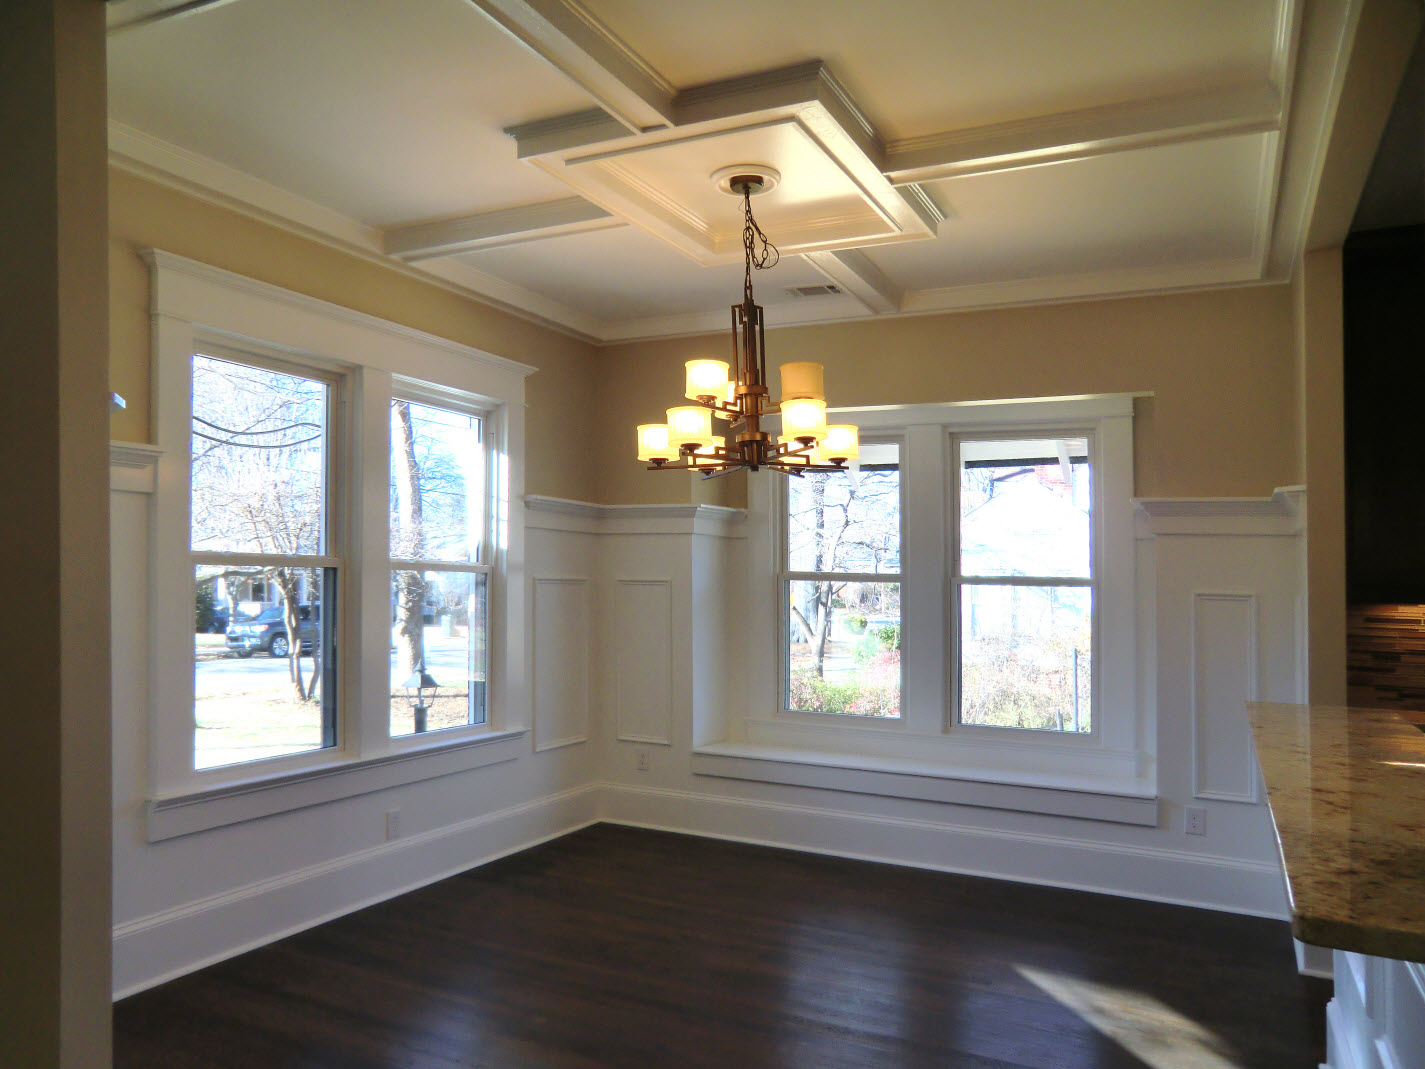 Dining Room with coffered ceiling with chandelier and window plus wooden floor